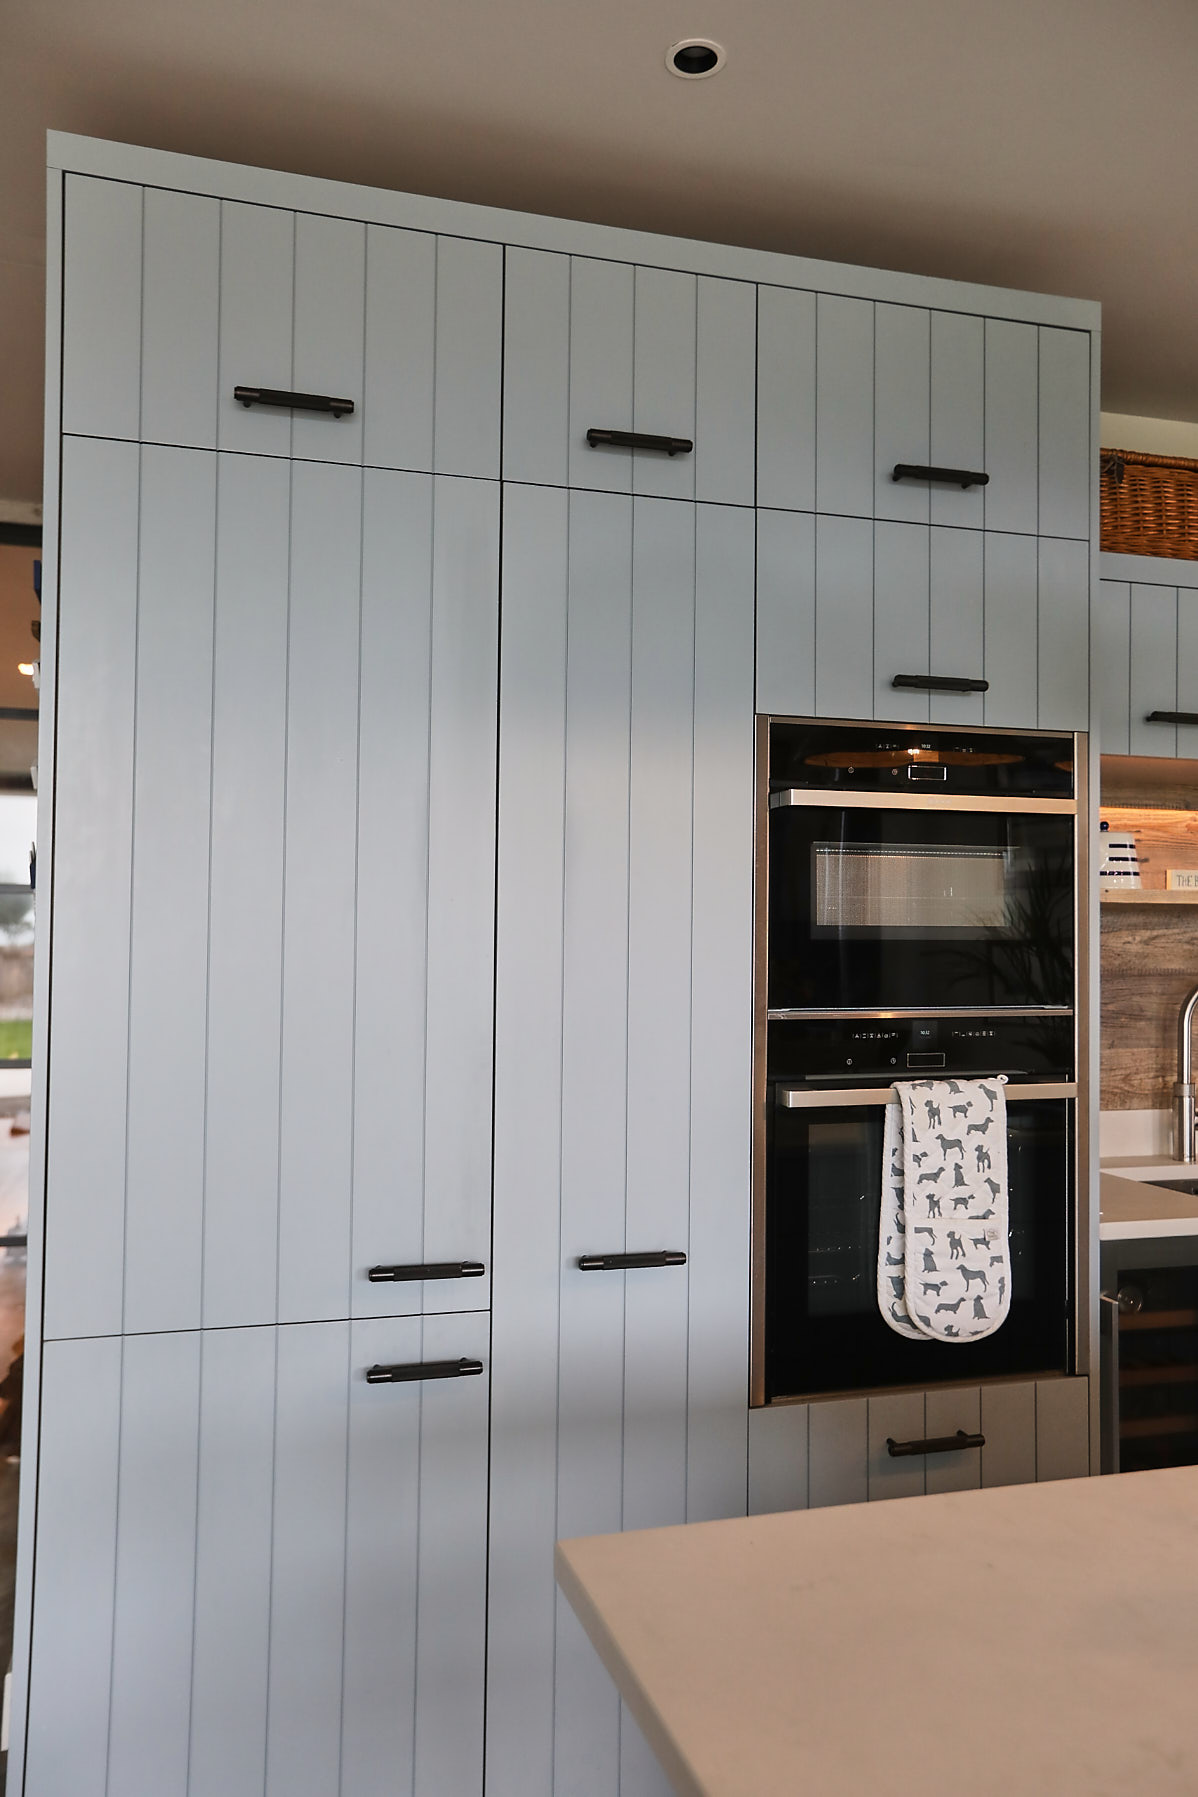 Tall integrated eye level Siemens oven in blue kitchen cabinet